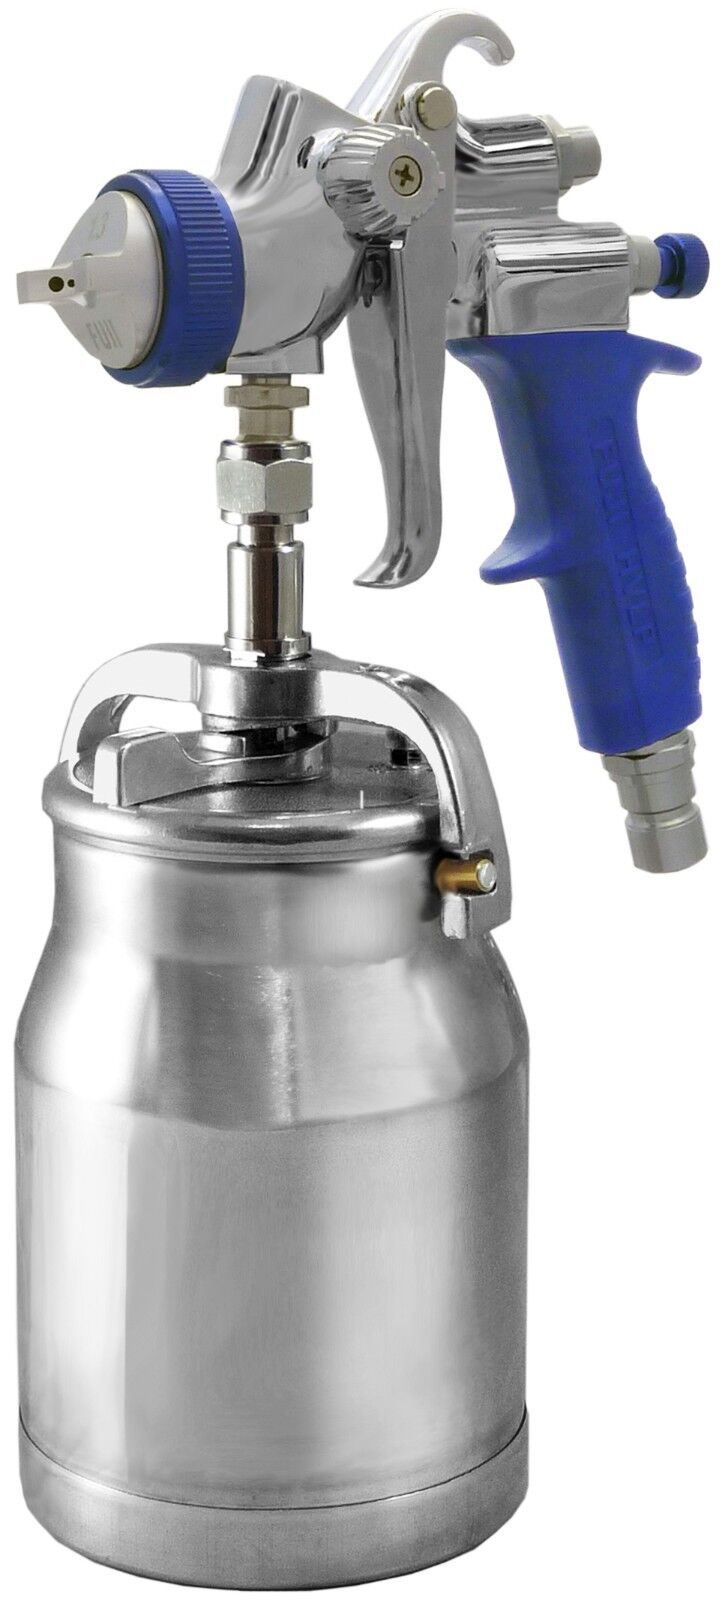 NEW    Fuji 5070 T70 Series  HVLP Spray Gun 1000cc Cup